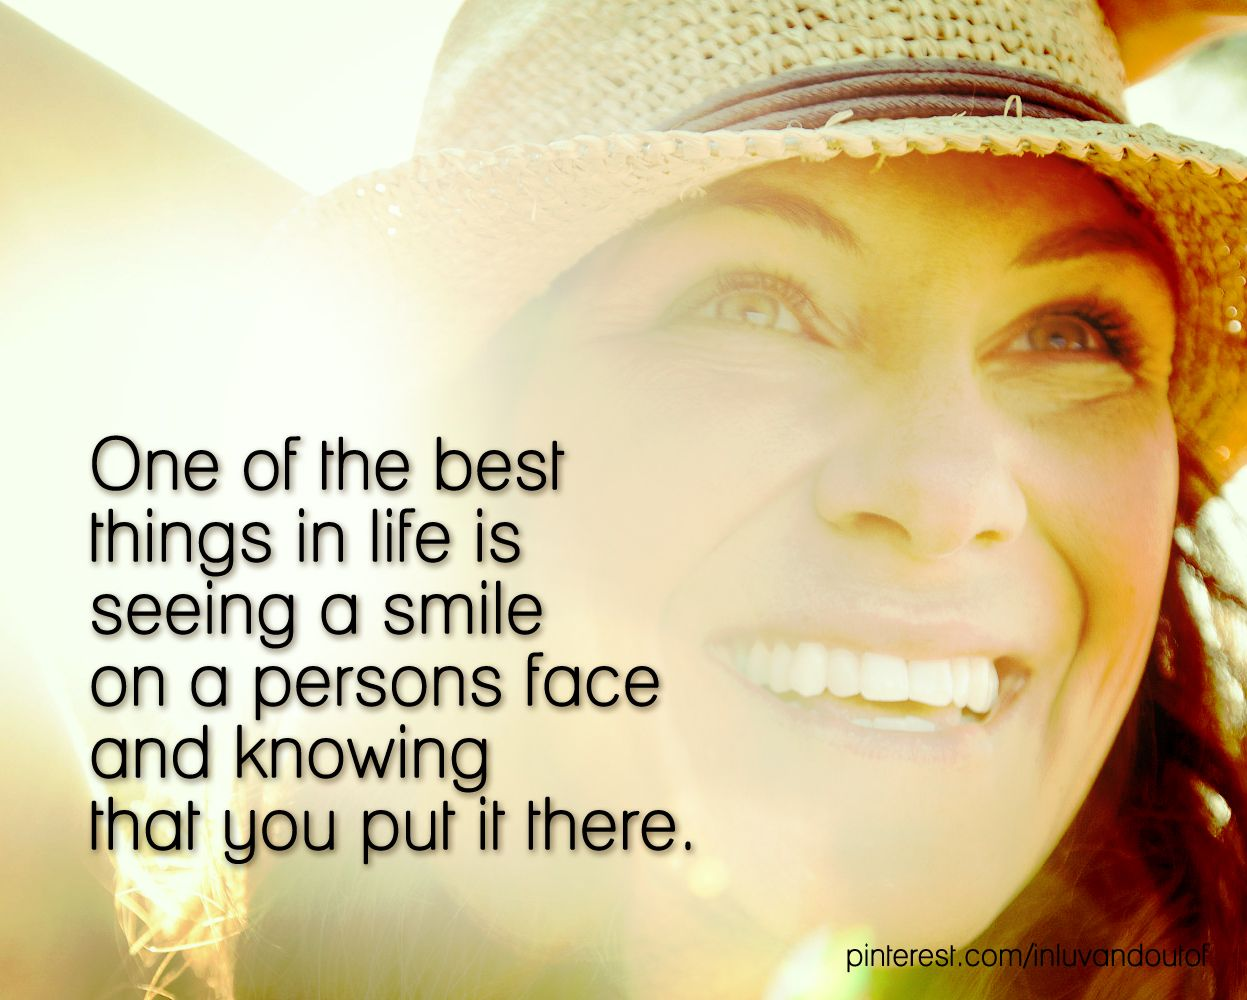 Smile poems and quotes - One Of The Best Things In Life Is Seeing A Smile On A Persons Face And